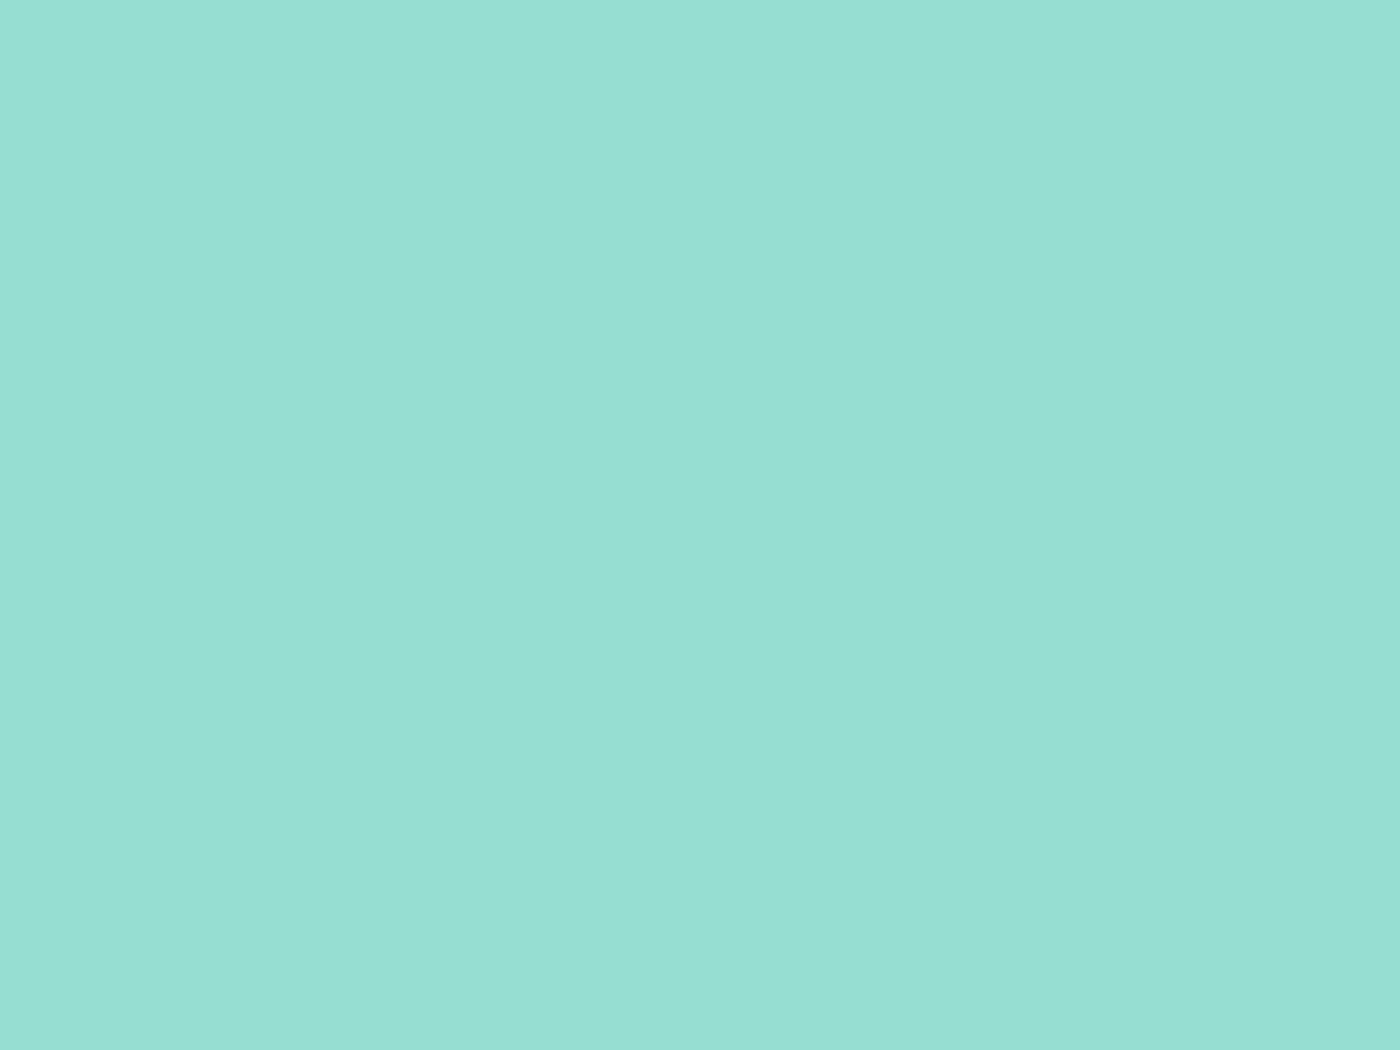 1400x1050 Pale Robin Egg Blue Solid Color Background